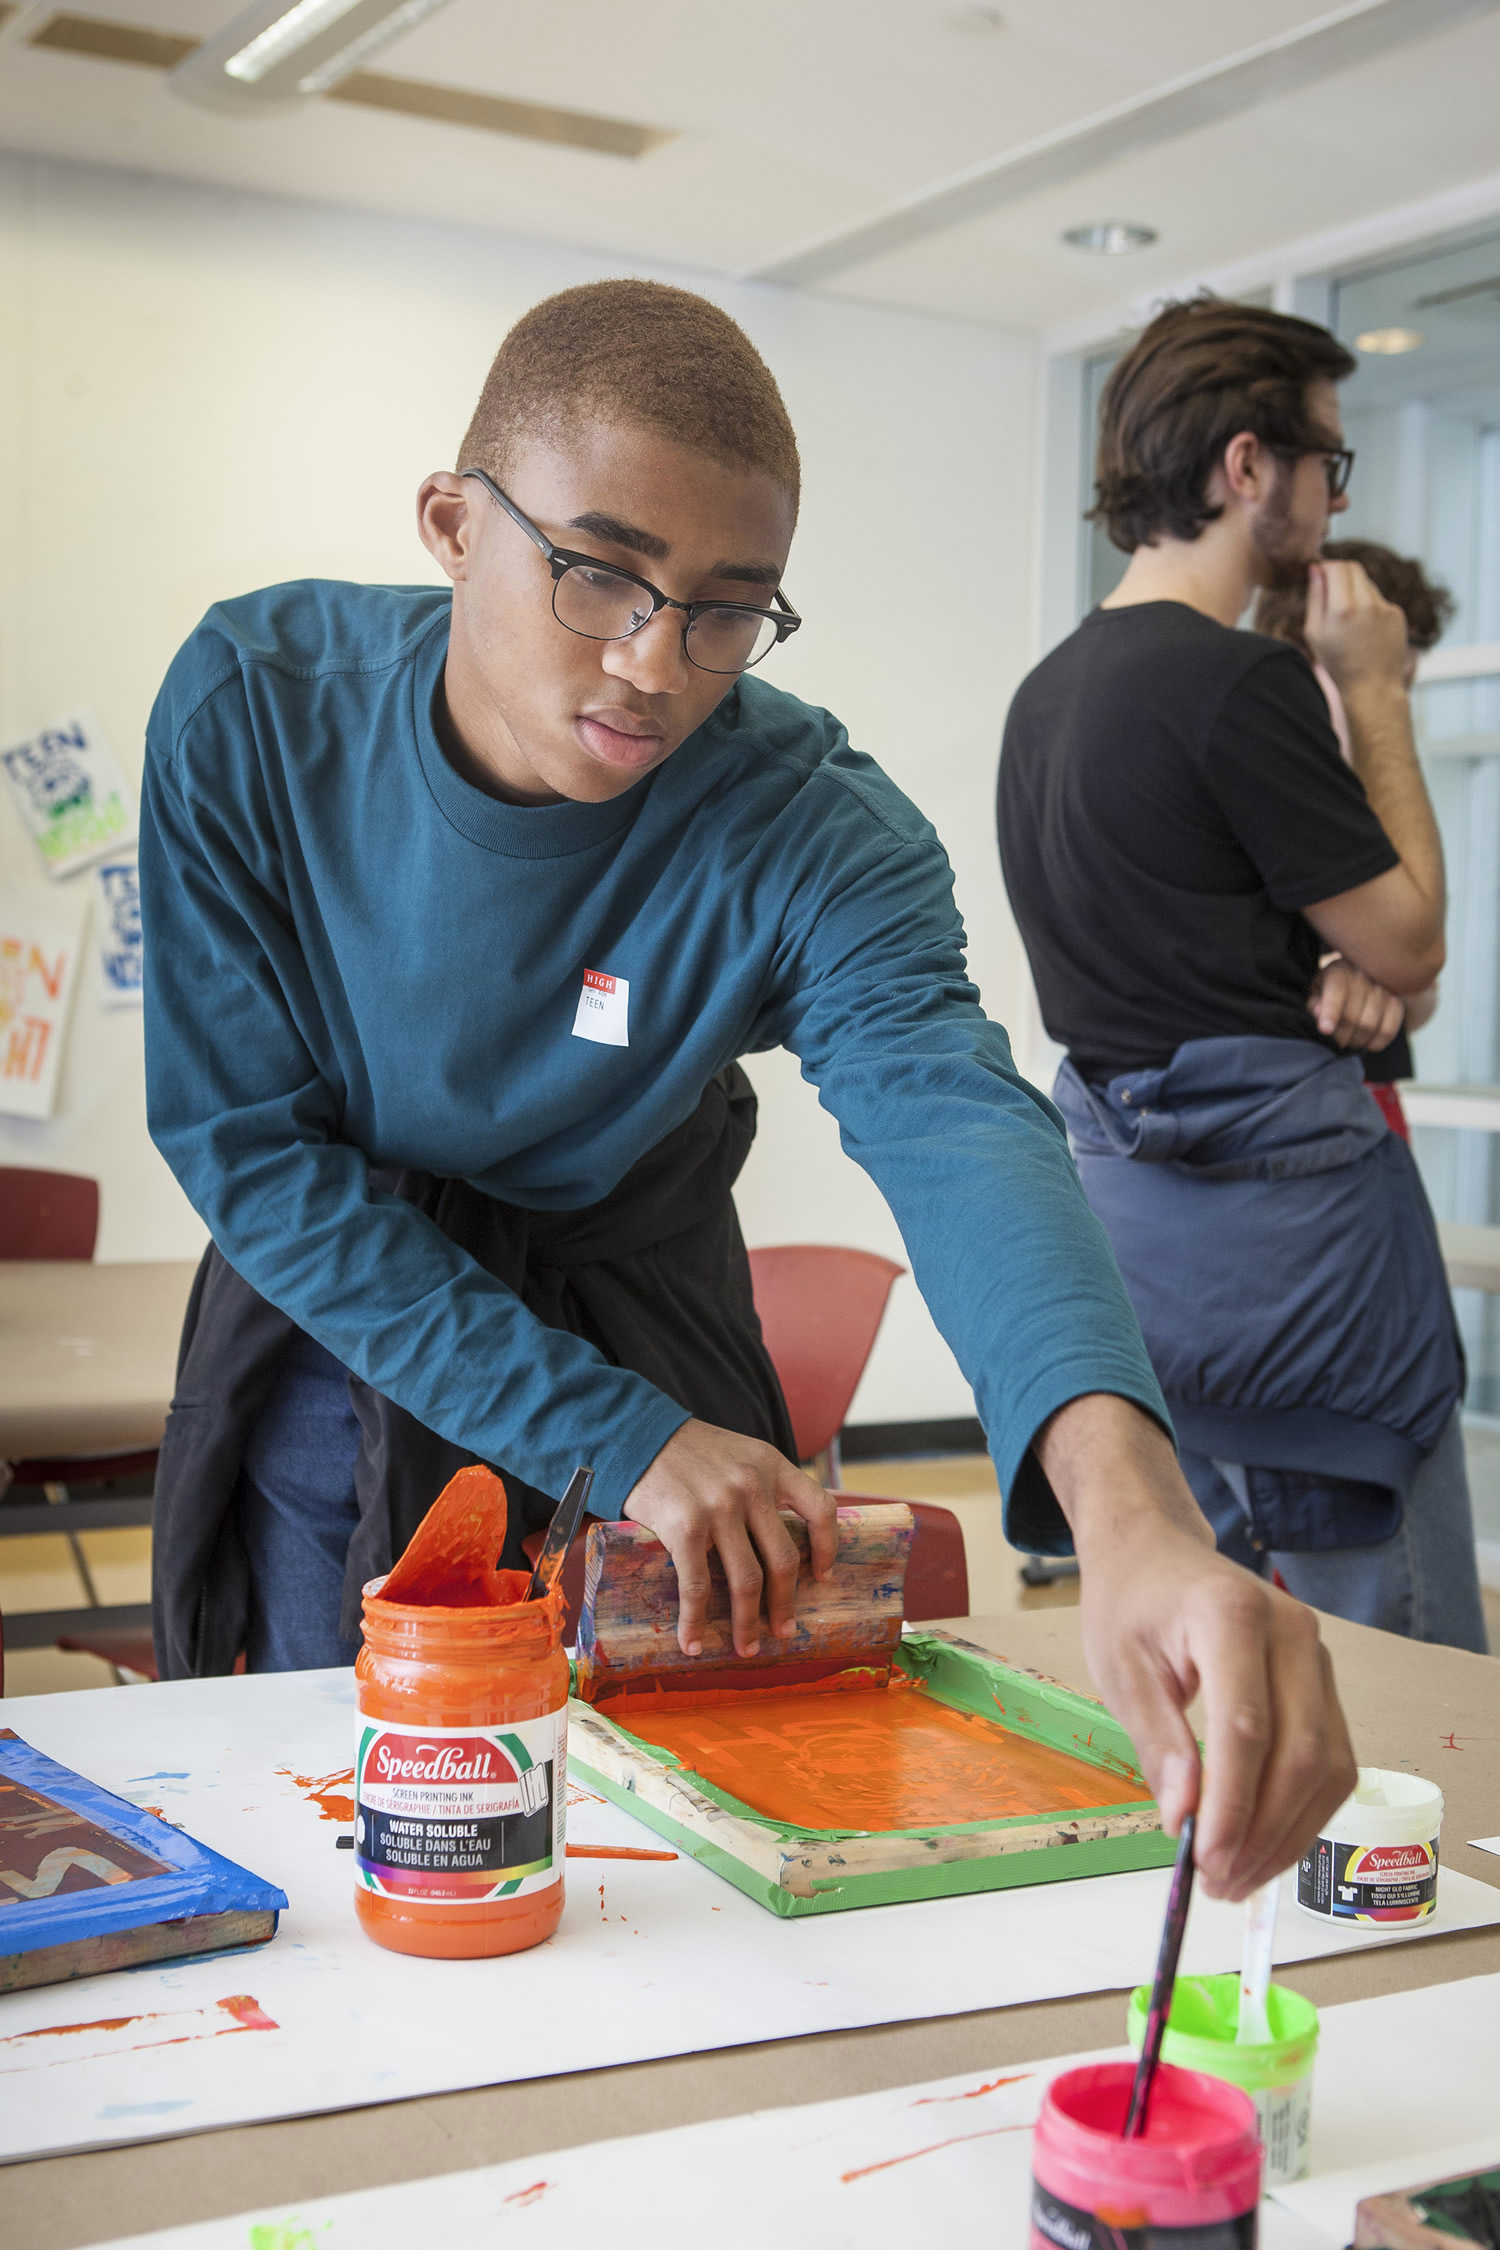 A teenaged boy tries screenprinting in a workshop at the High Museum of Art.